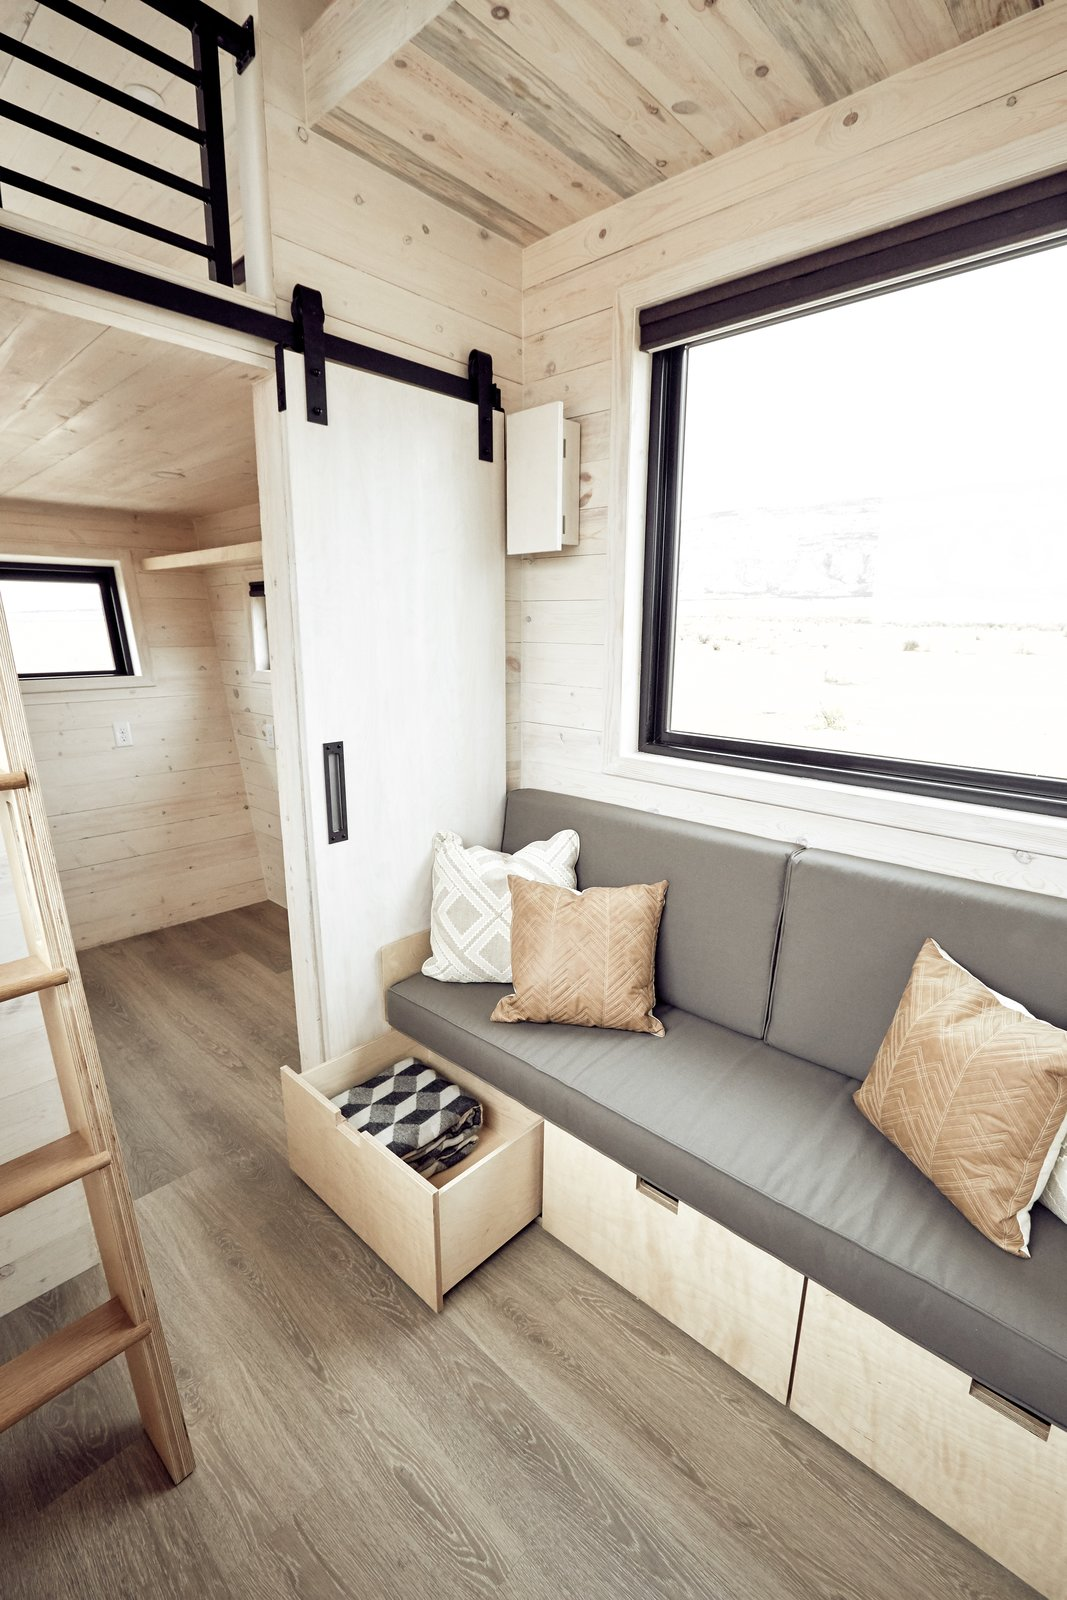 Storage Room This built-in custom couch offers ample storage underneath.    Land Ark RV - Drake by Brian Buzarde